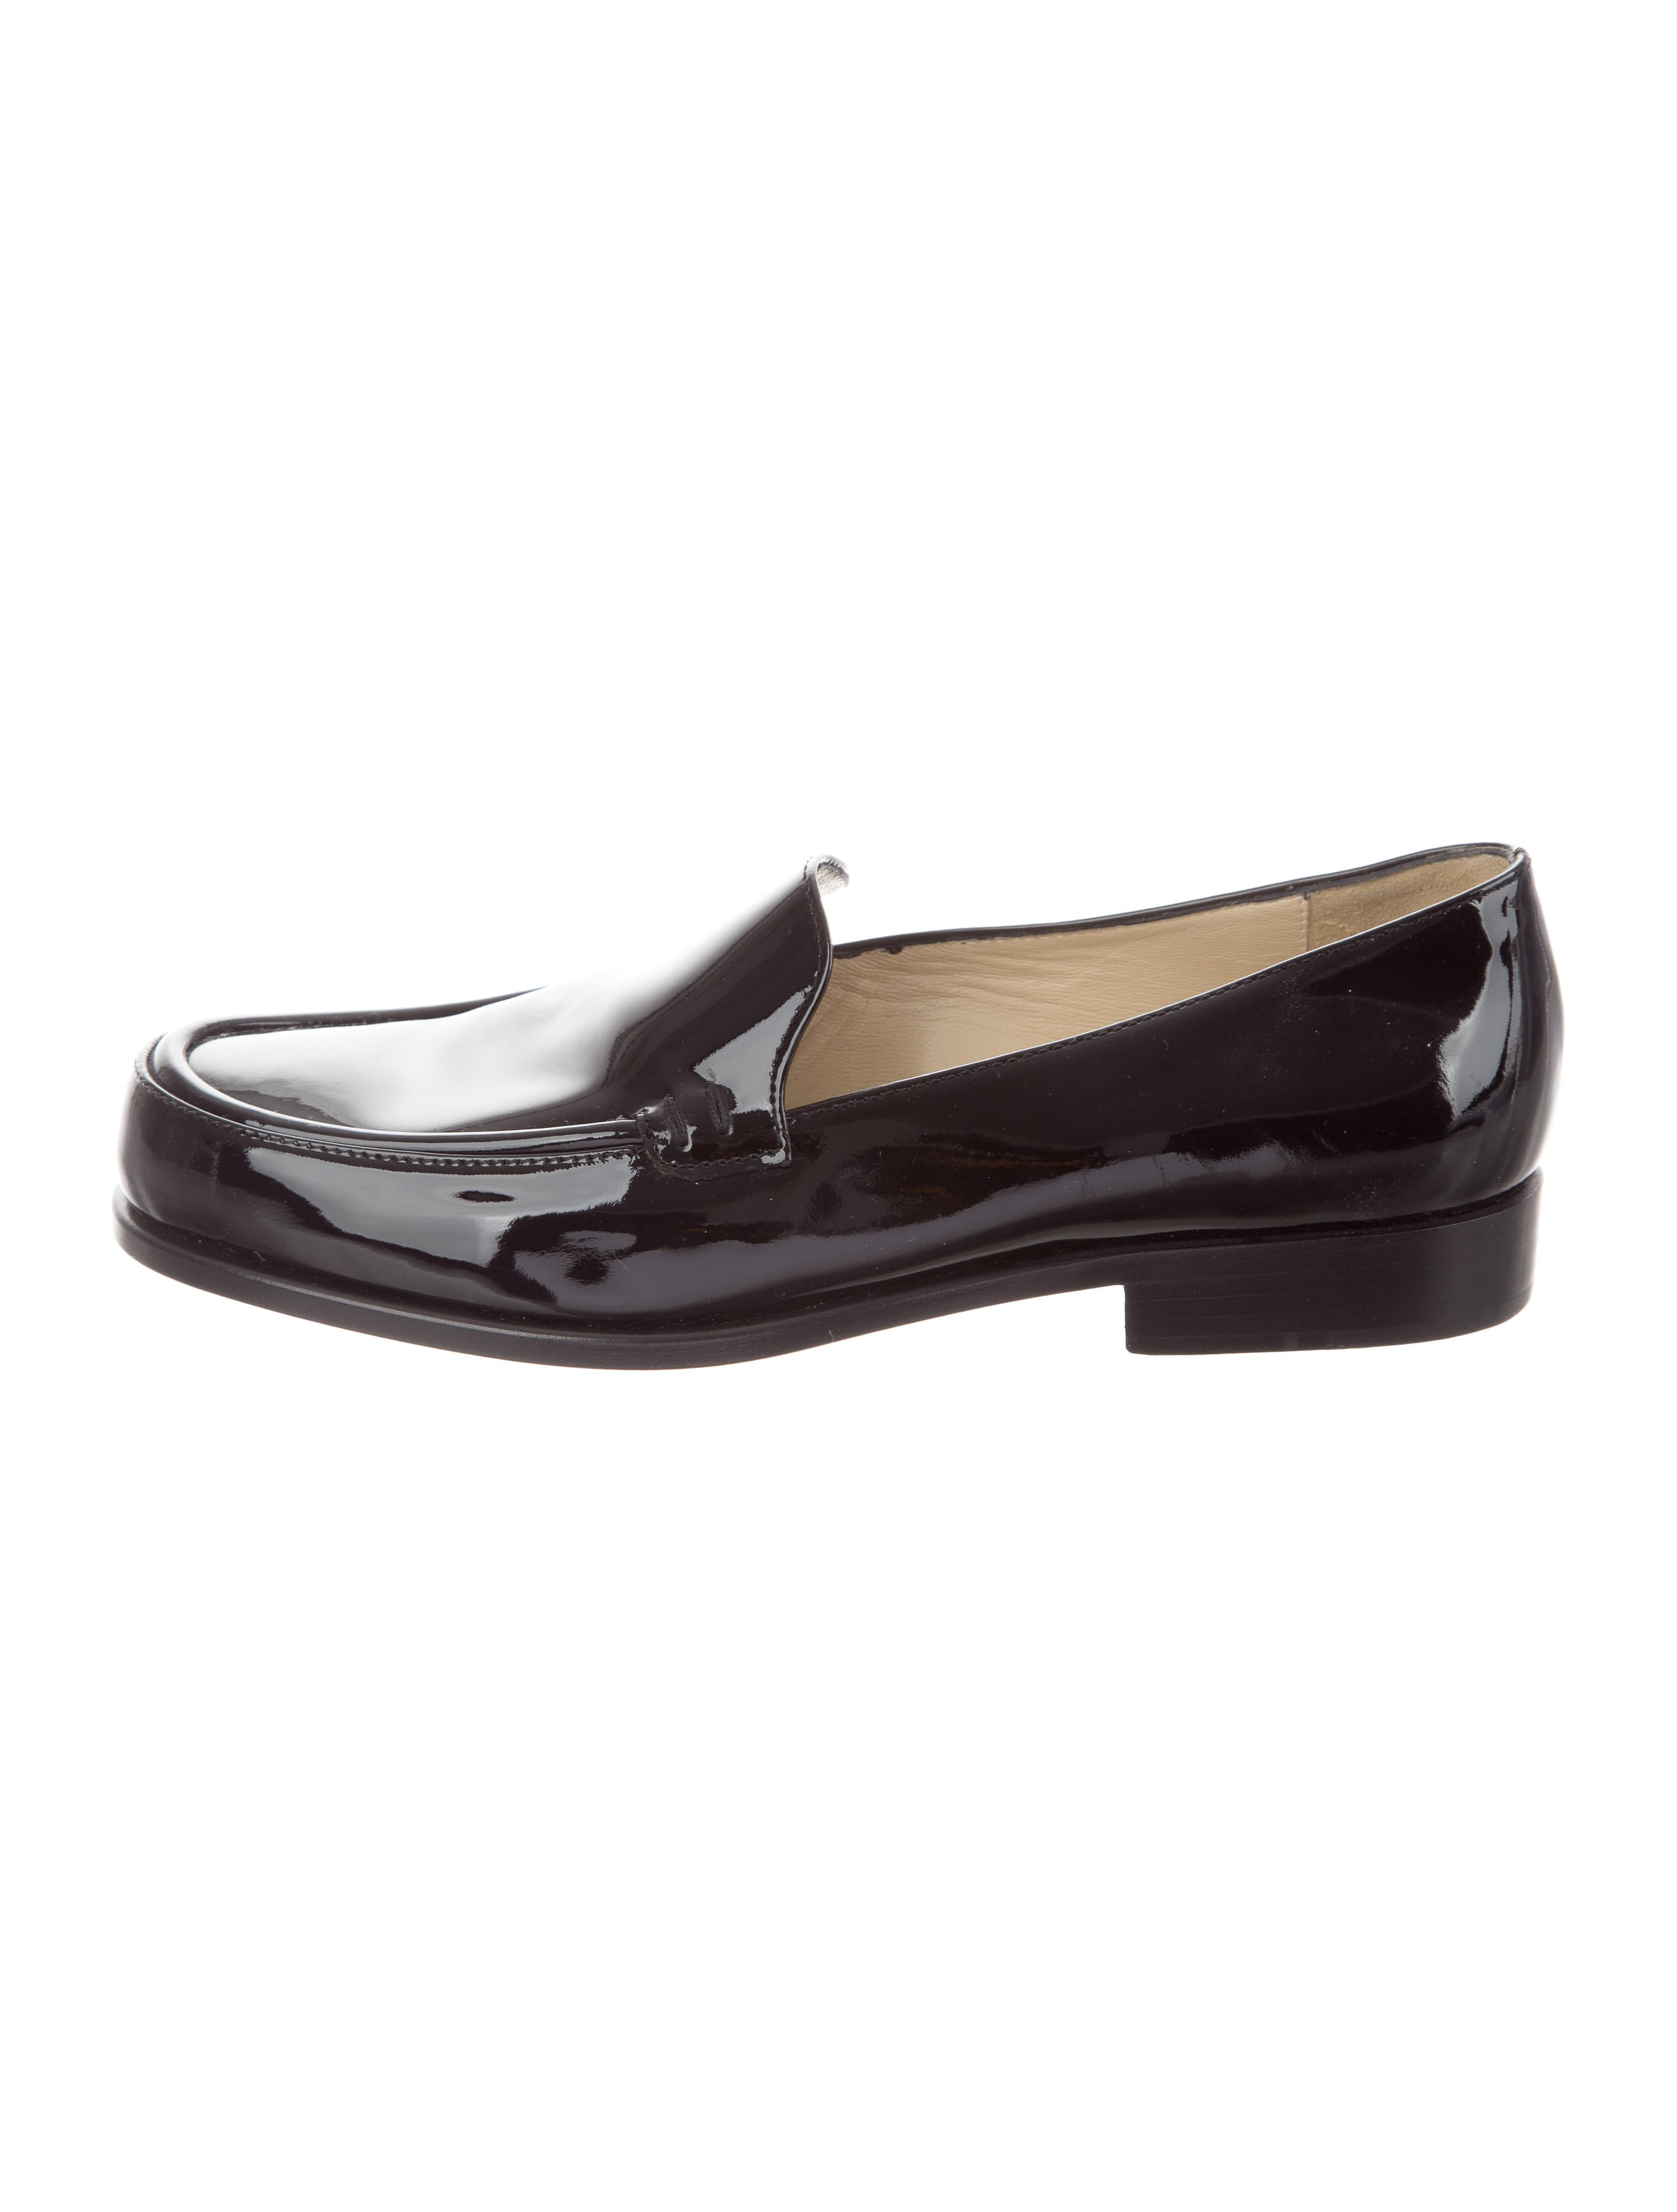 Prada Patent Leather Round-Toe Loafers buy cheap low shipping cheap sale newest the cheapest online new sale online browse sale online Q6vt2G4EN